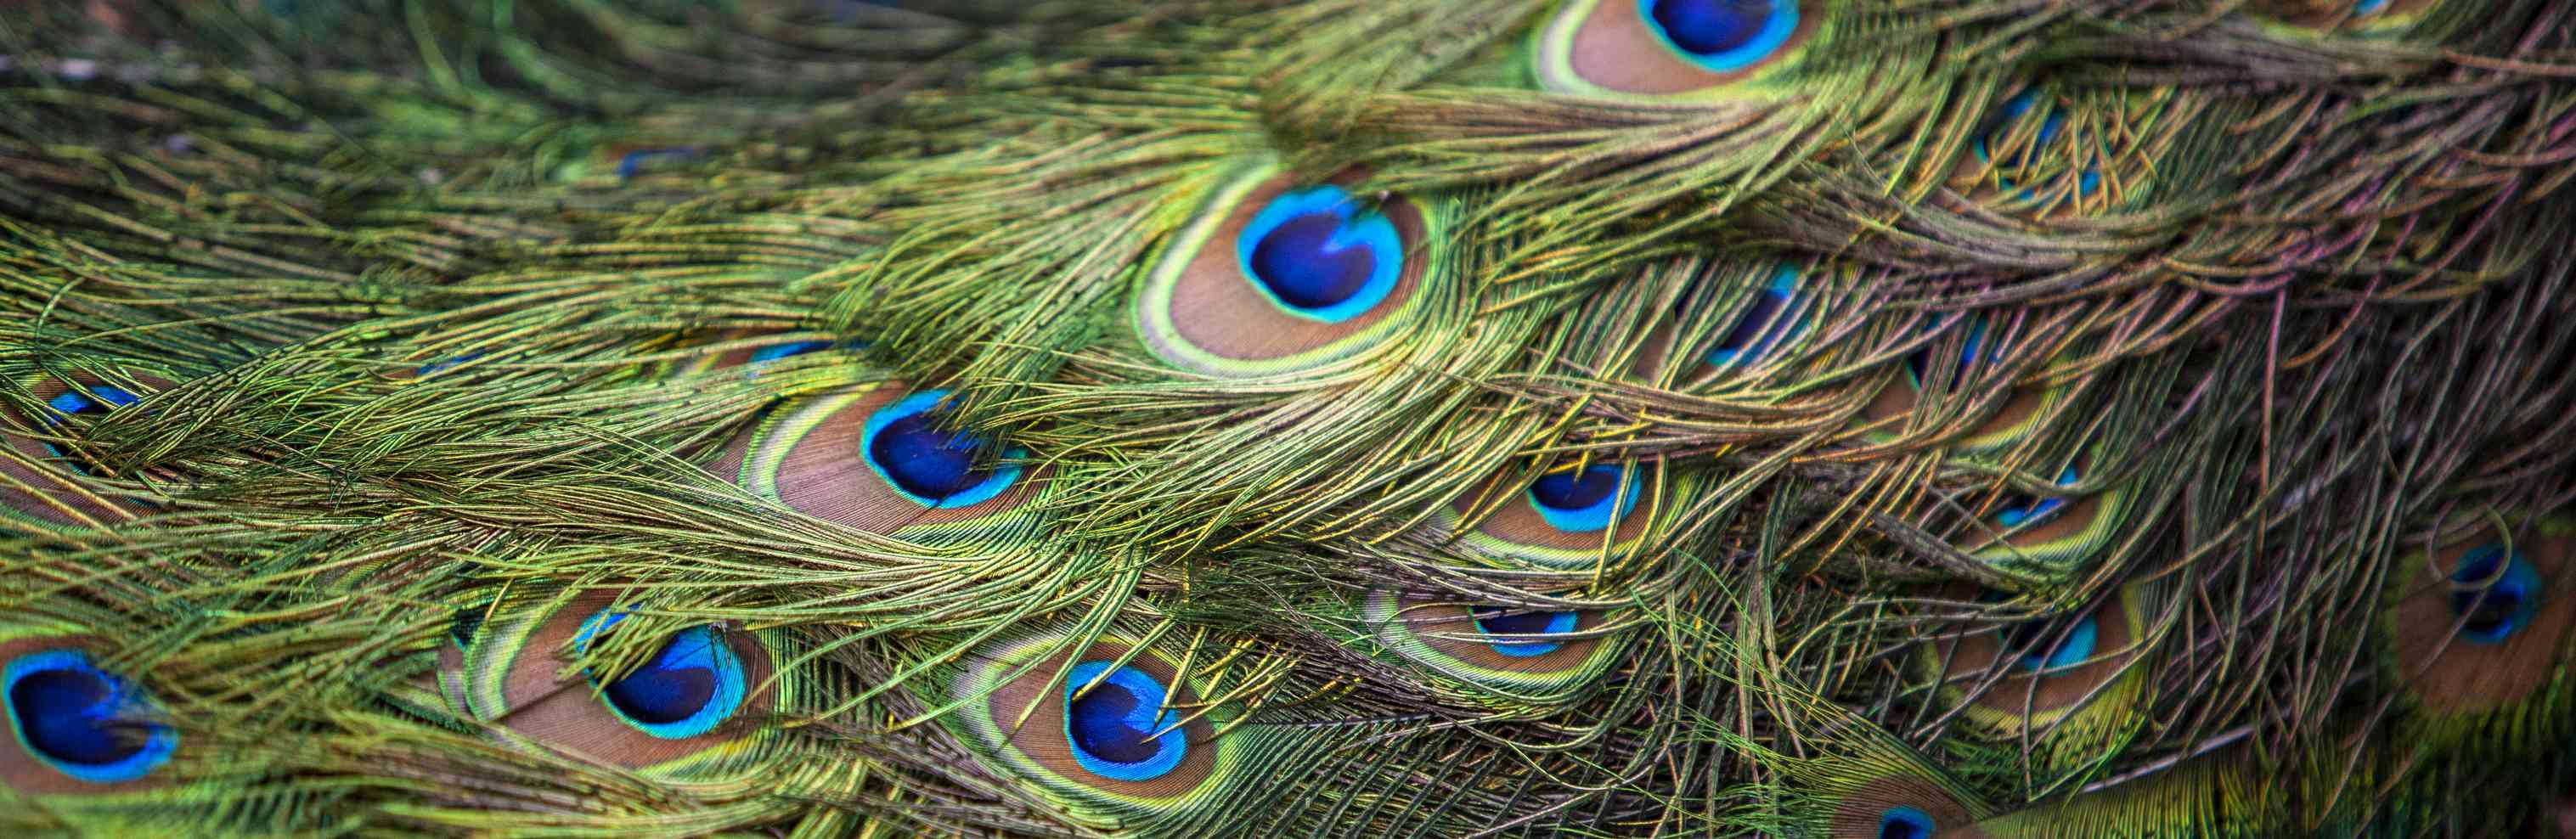 Pattern of multi colored bright feathers of a peacock tail, background